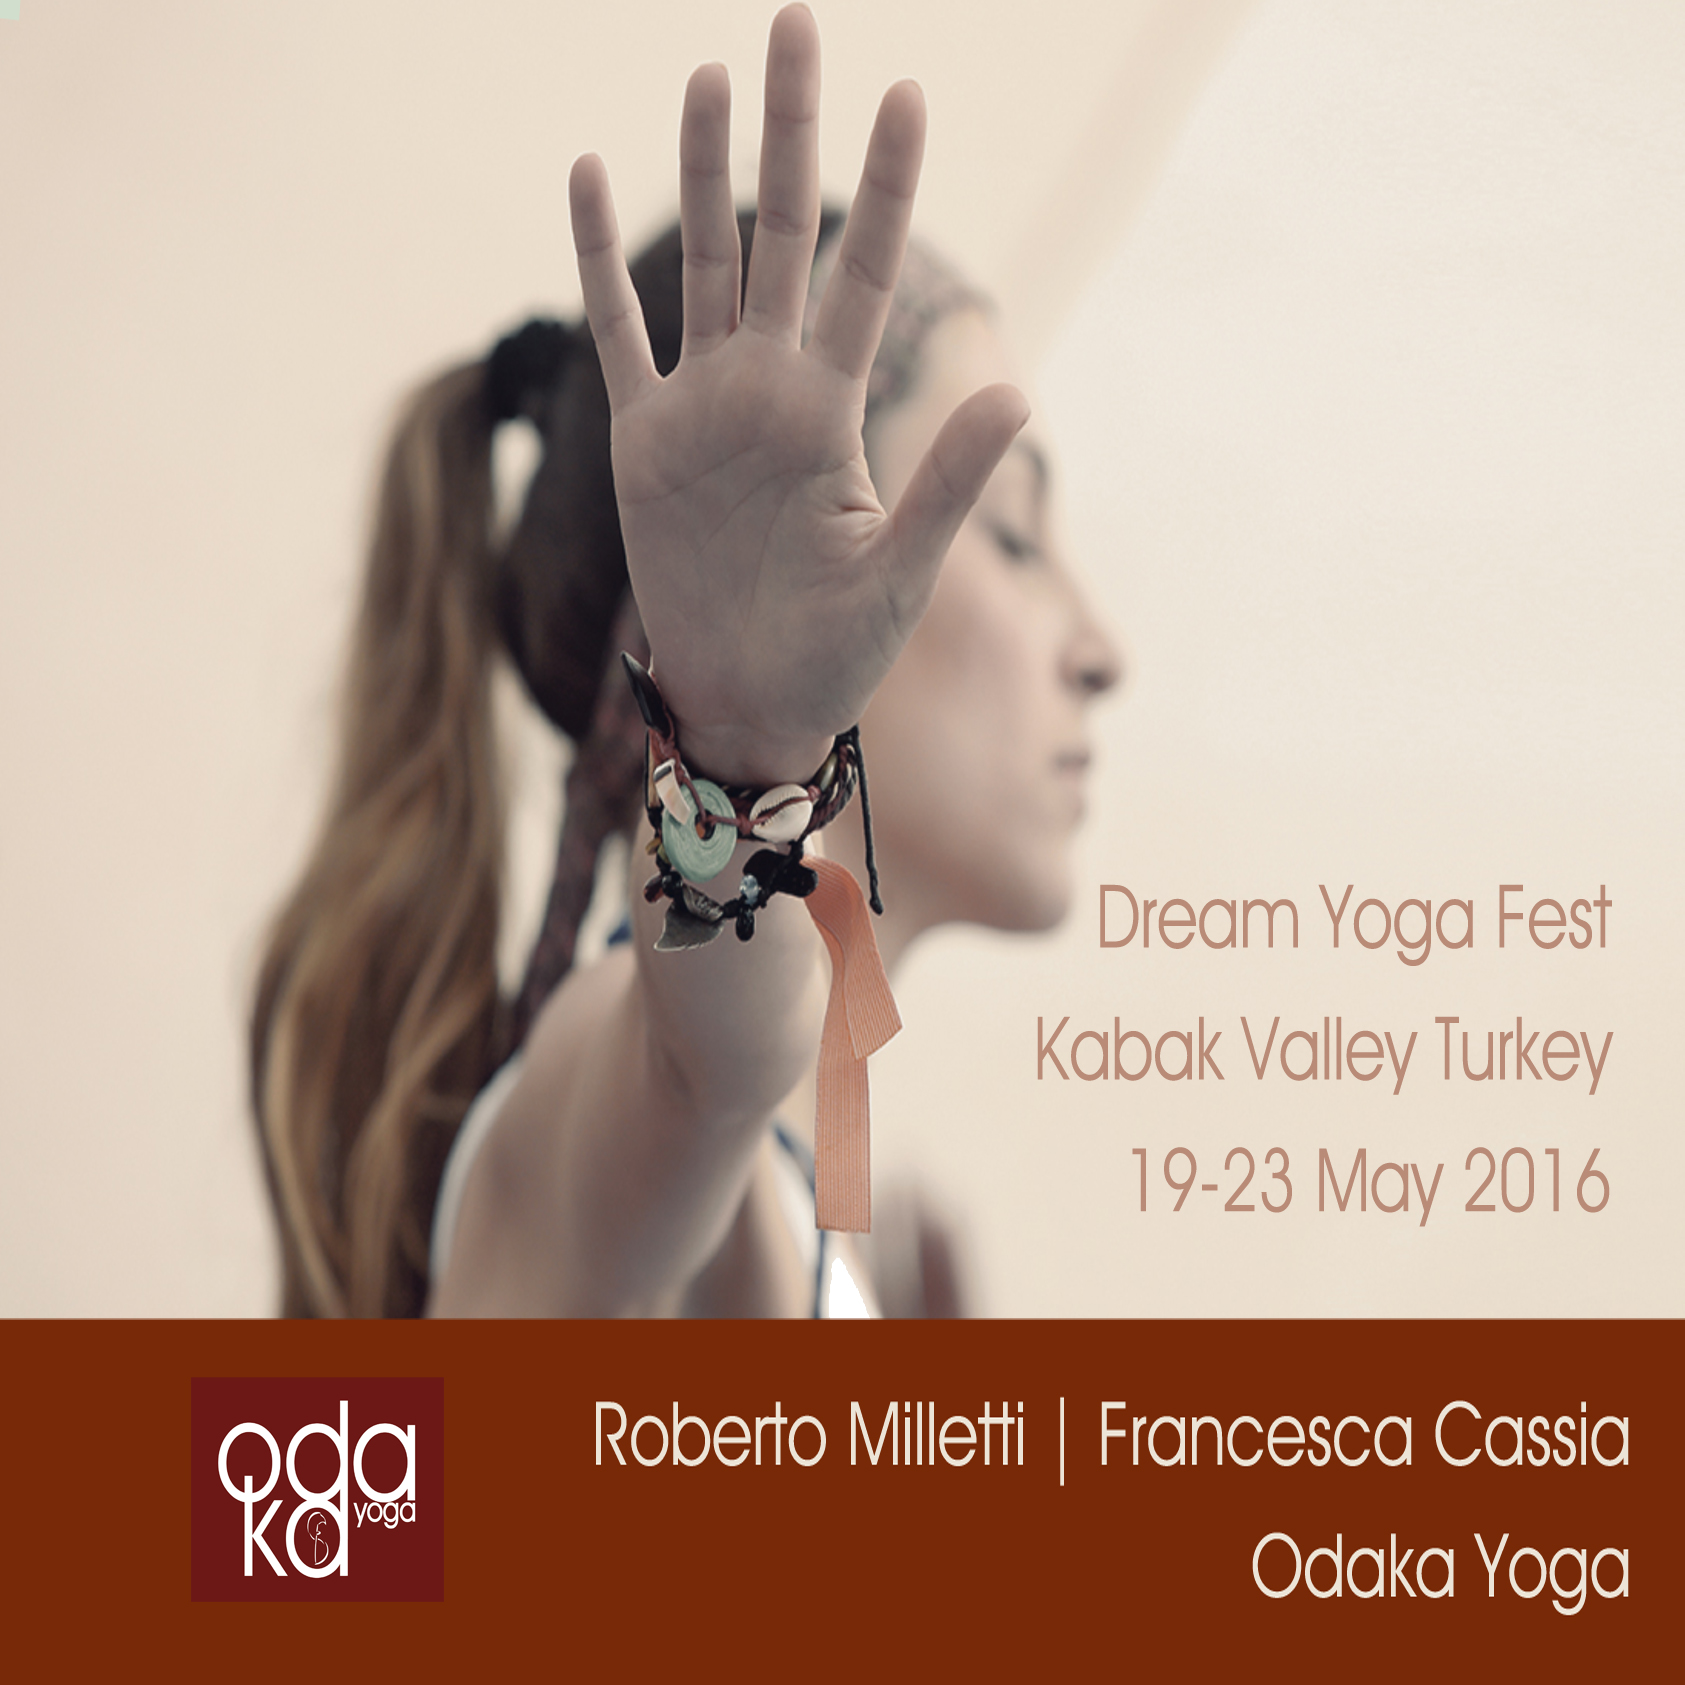 Dream Yoga Events